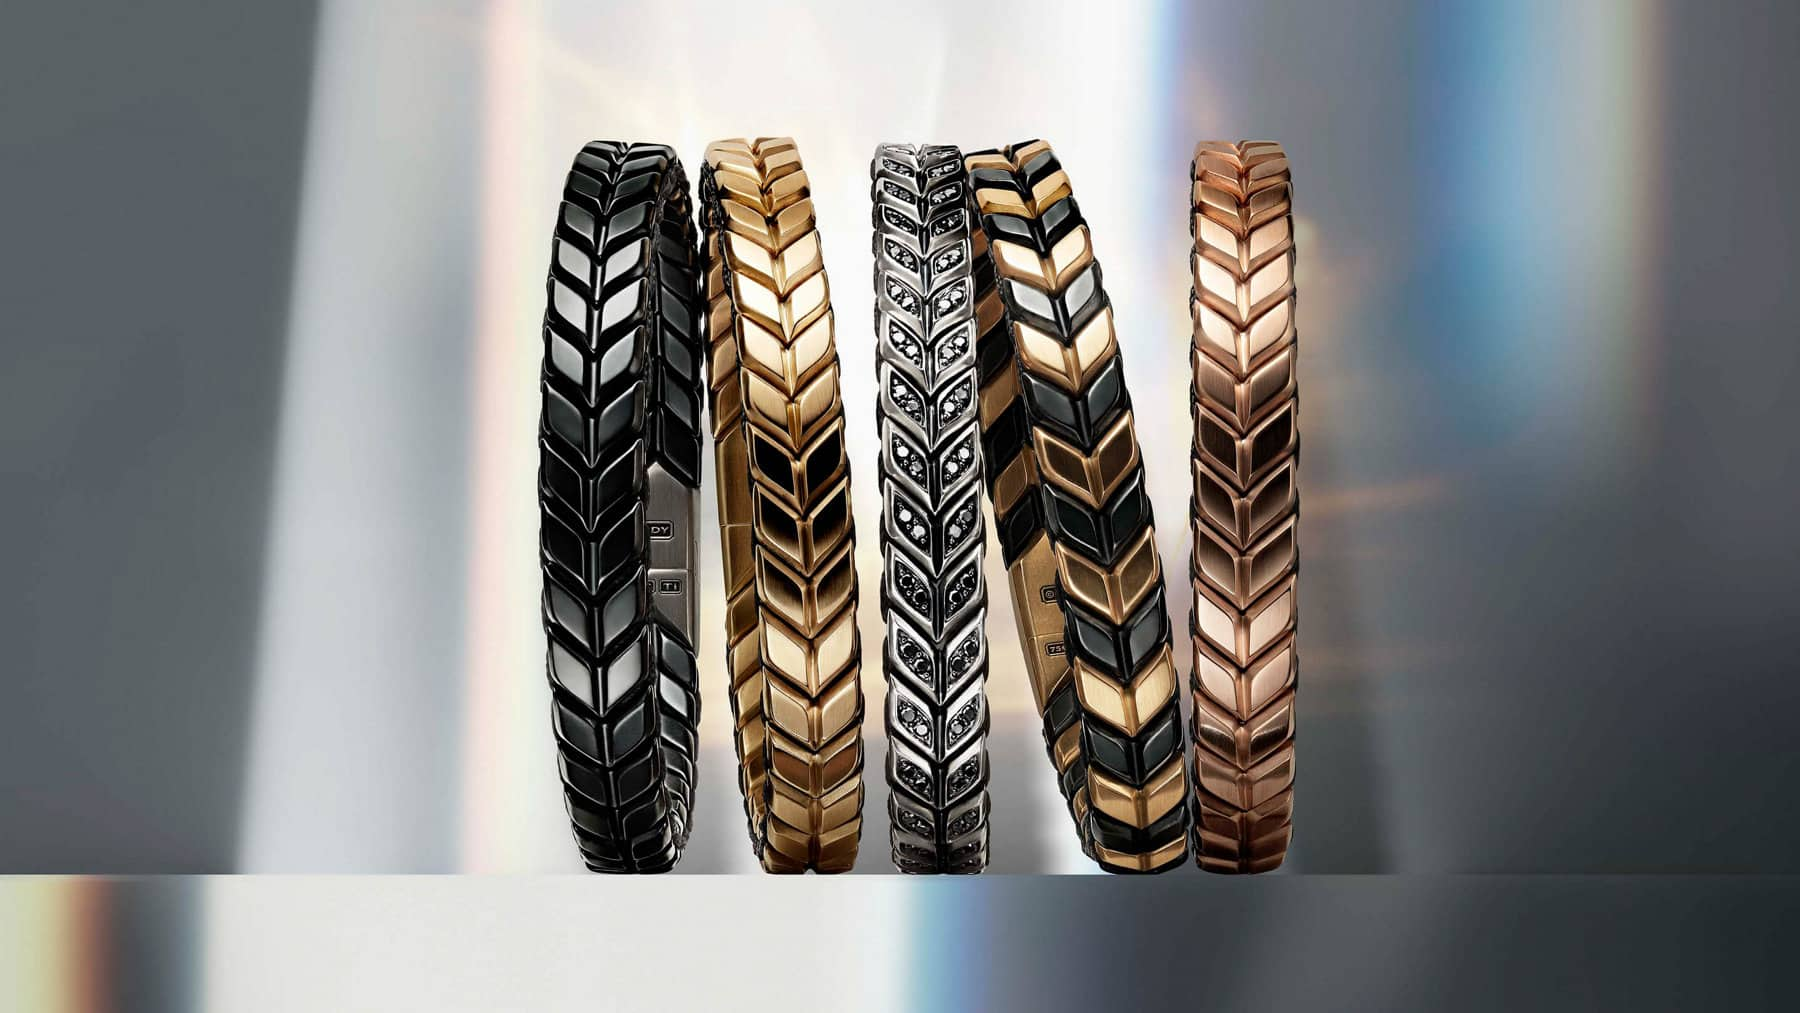 A color photo shows five David Yurman Chevron bracelets in a horizontal stack. The jewelry is crafted from black titanium, 18K yellow gold, sterling silver with pavé black diamonds, black titanium with 18K yellow gold, and 18K rose gold. In the background are reflections of rainbow-hued light.